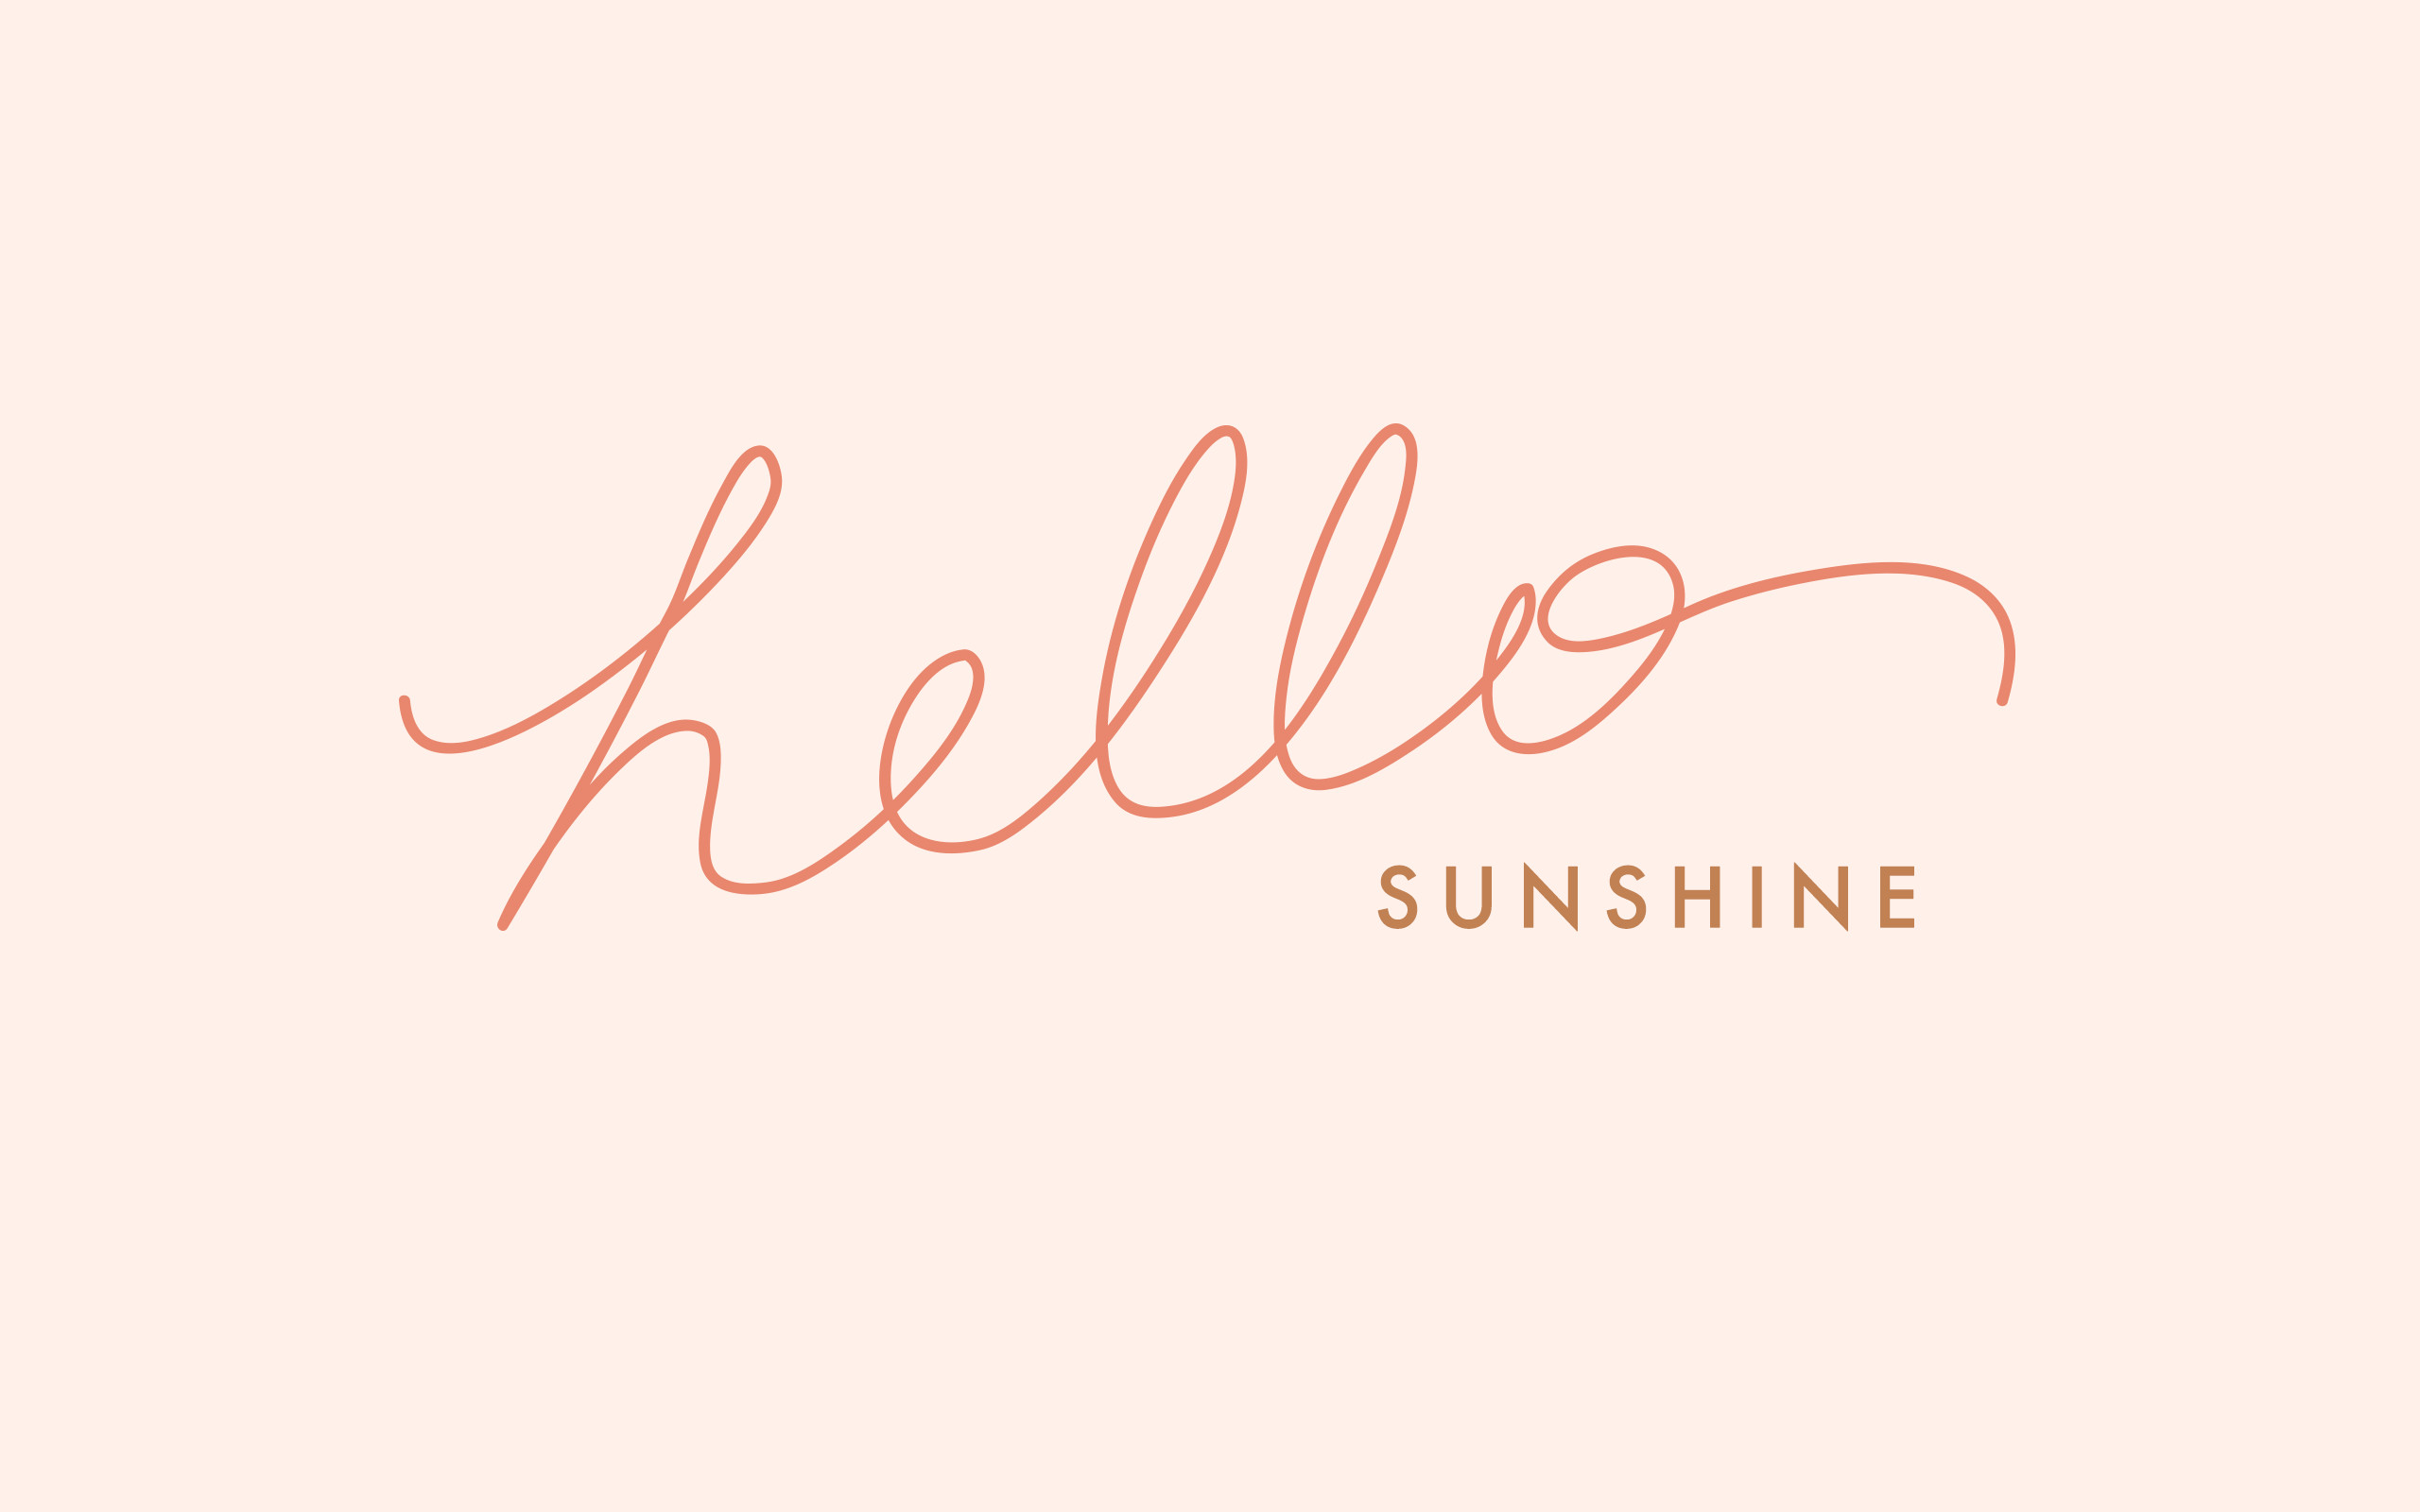 2560x1600 hello-sunshine-desktop_01.png 2,560×1,600 pixels | Mcbook backgrounds |  Pinterest | Wallpaper, Laptop wallpaper and MacBook